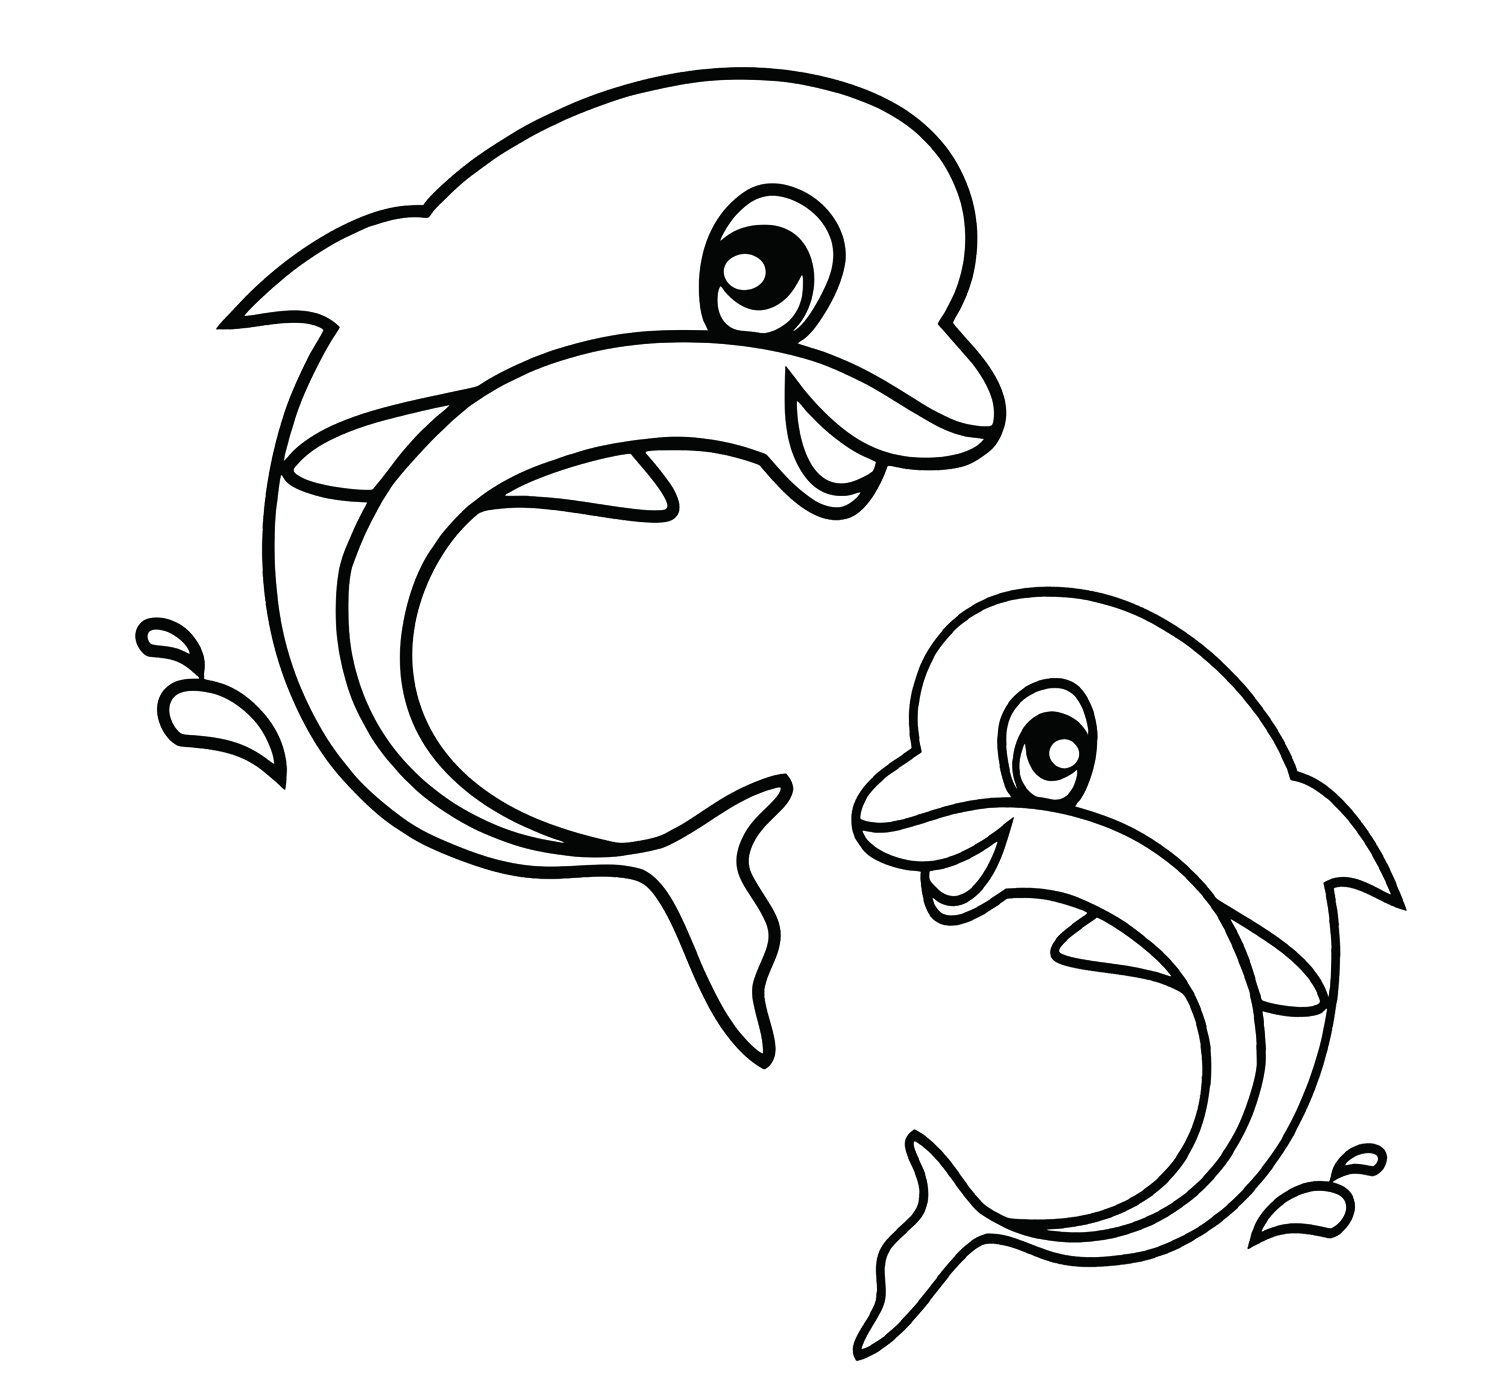 1500x1374 Cute Animals Coloring Pages